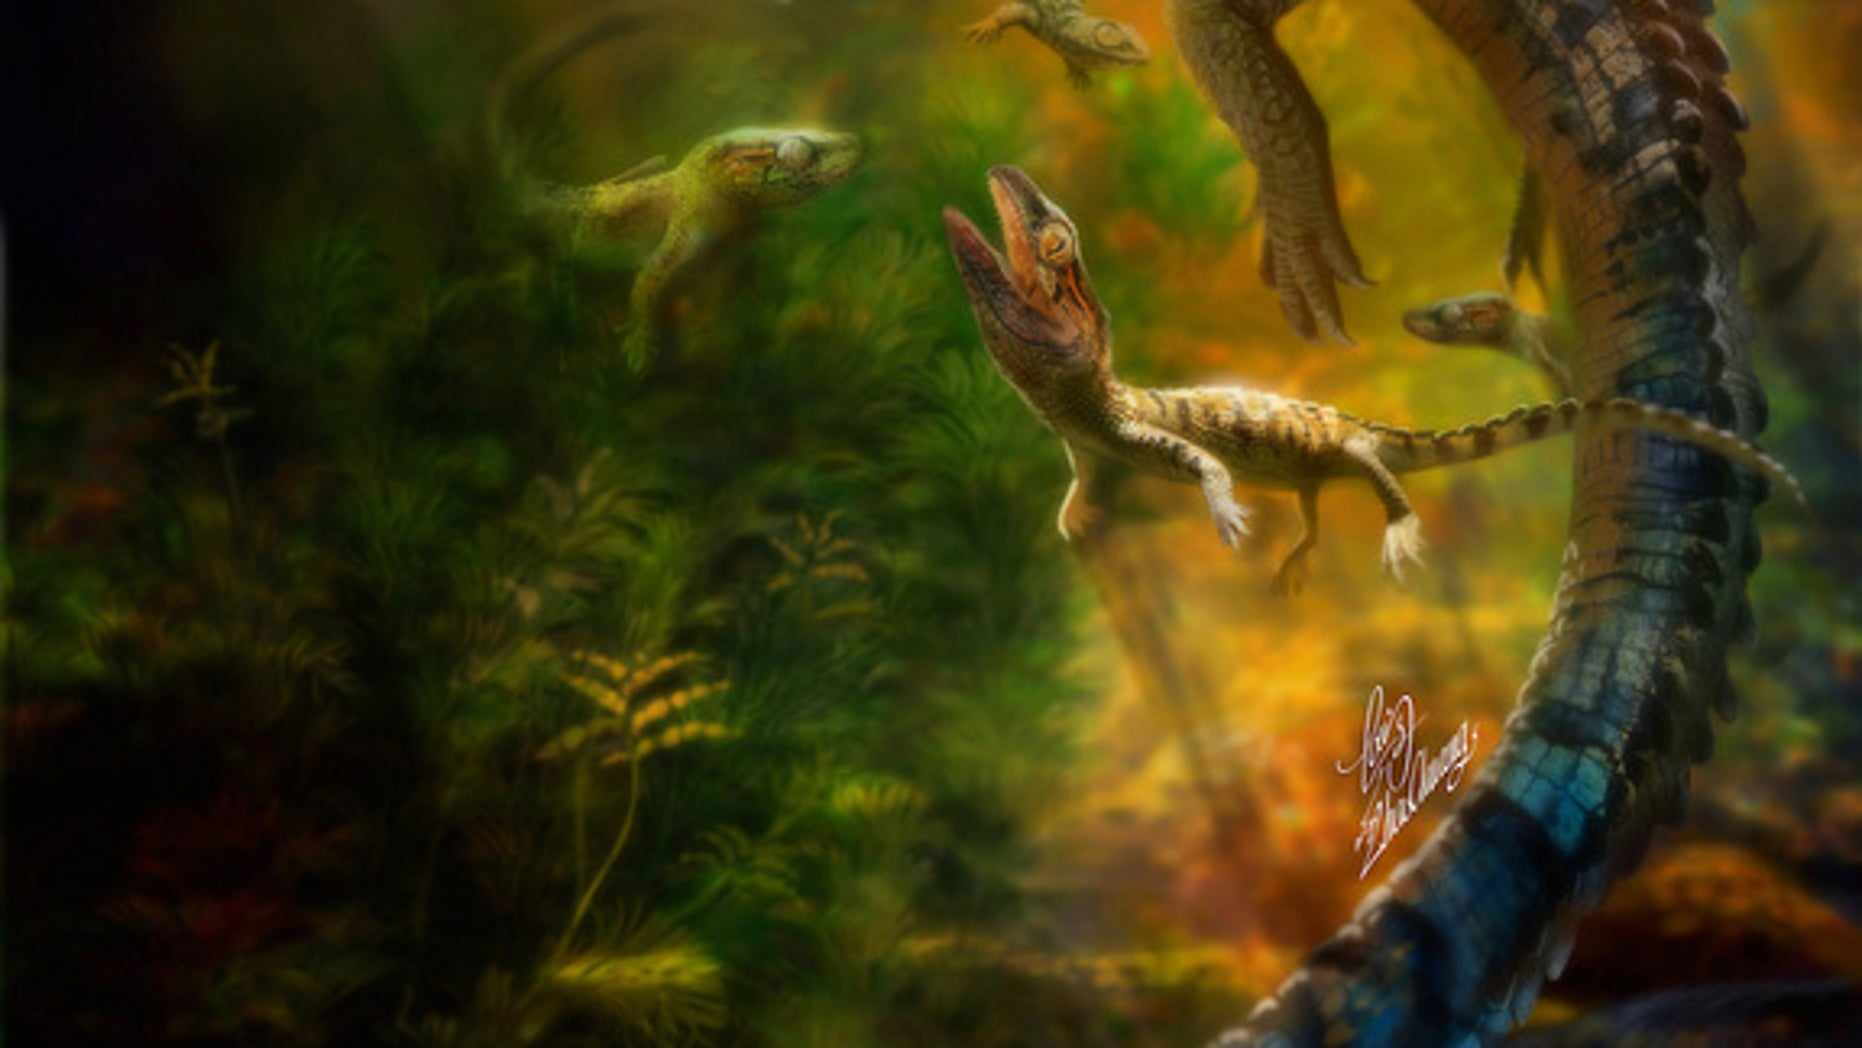 An artistic interpretation of an adult philydrosaurus caring for its young.